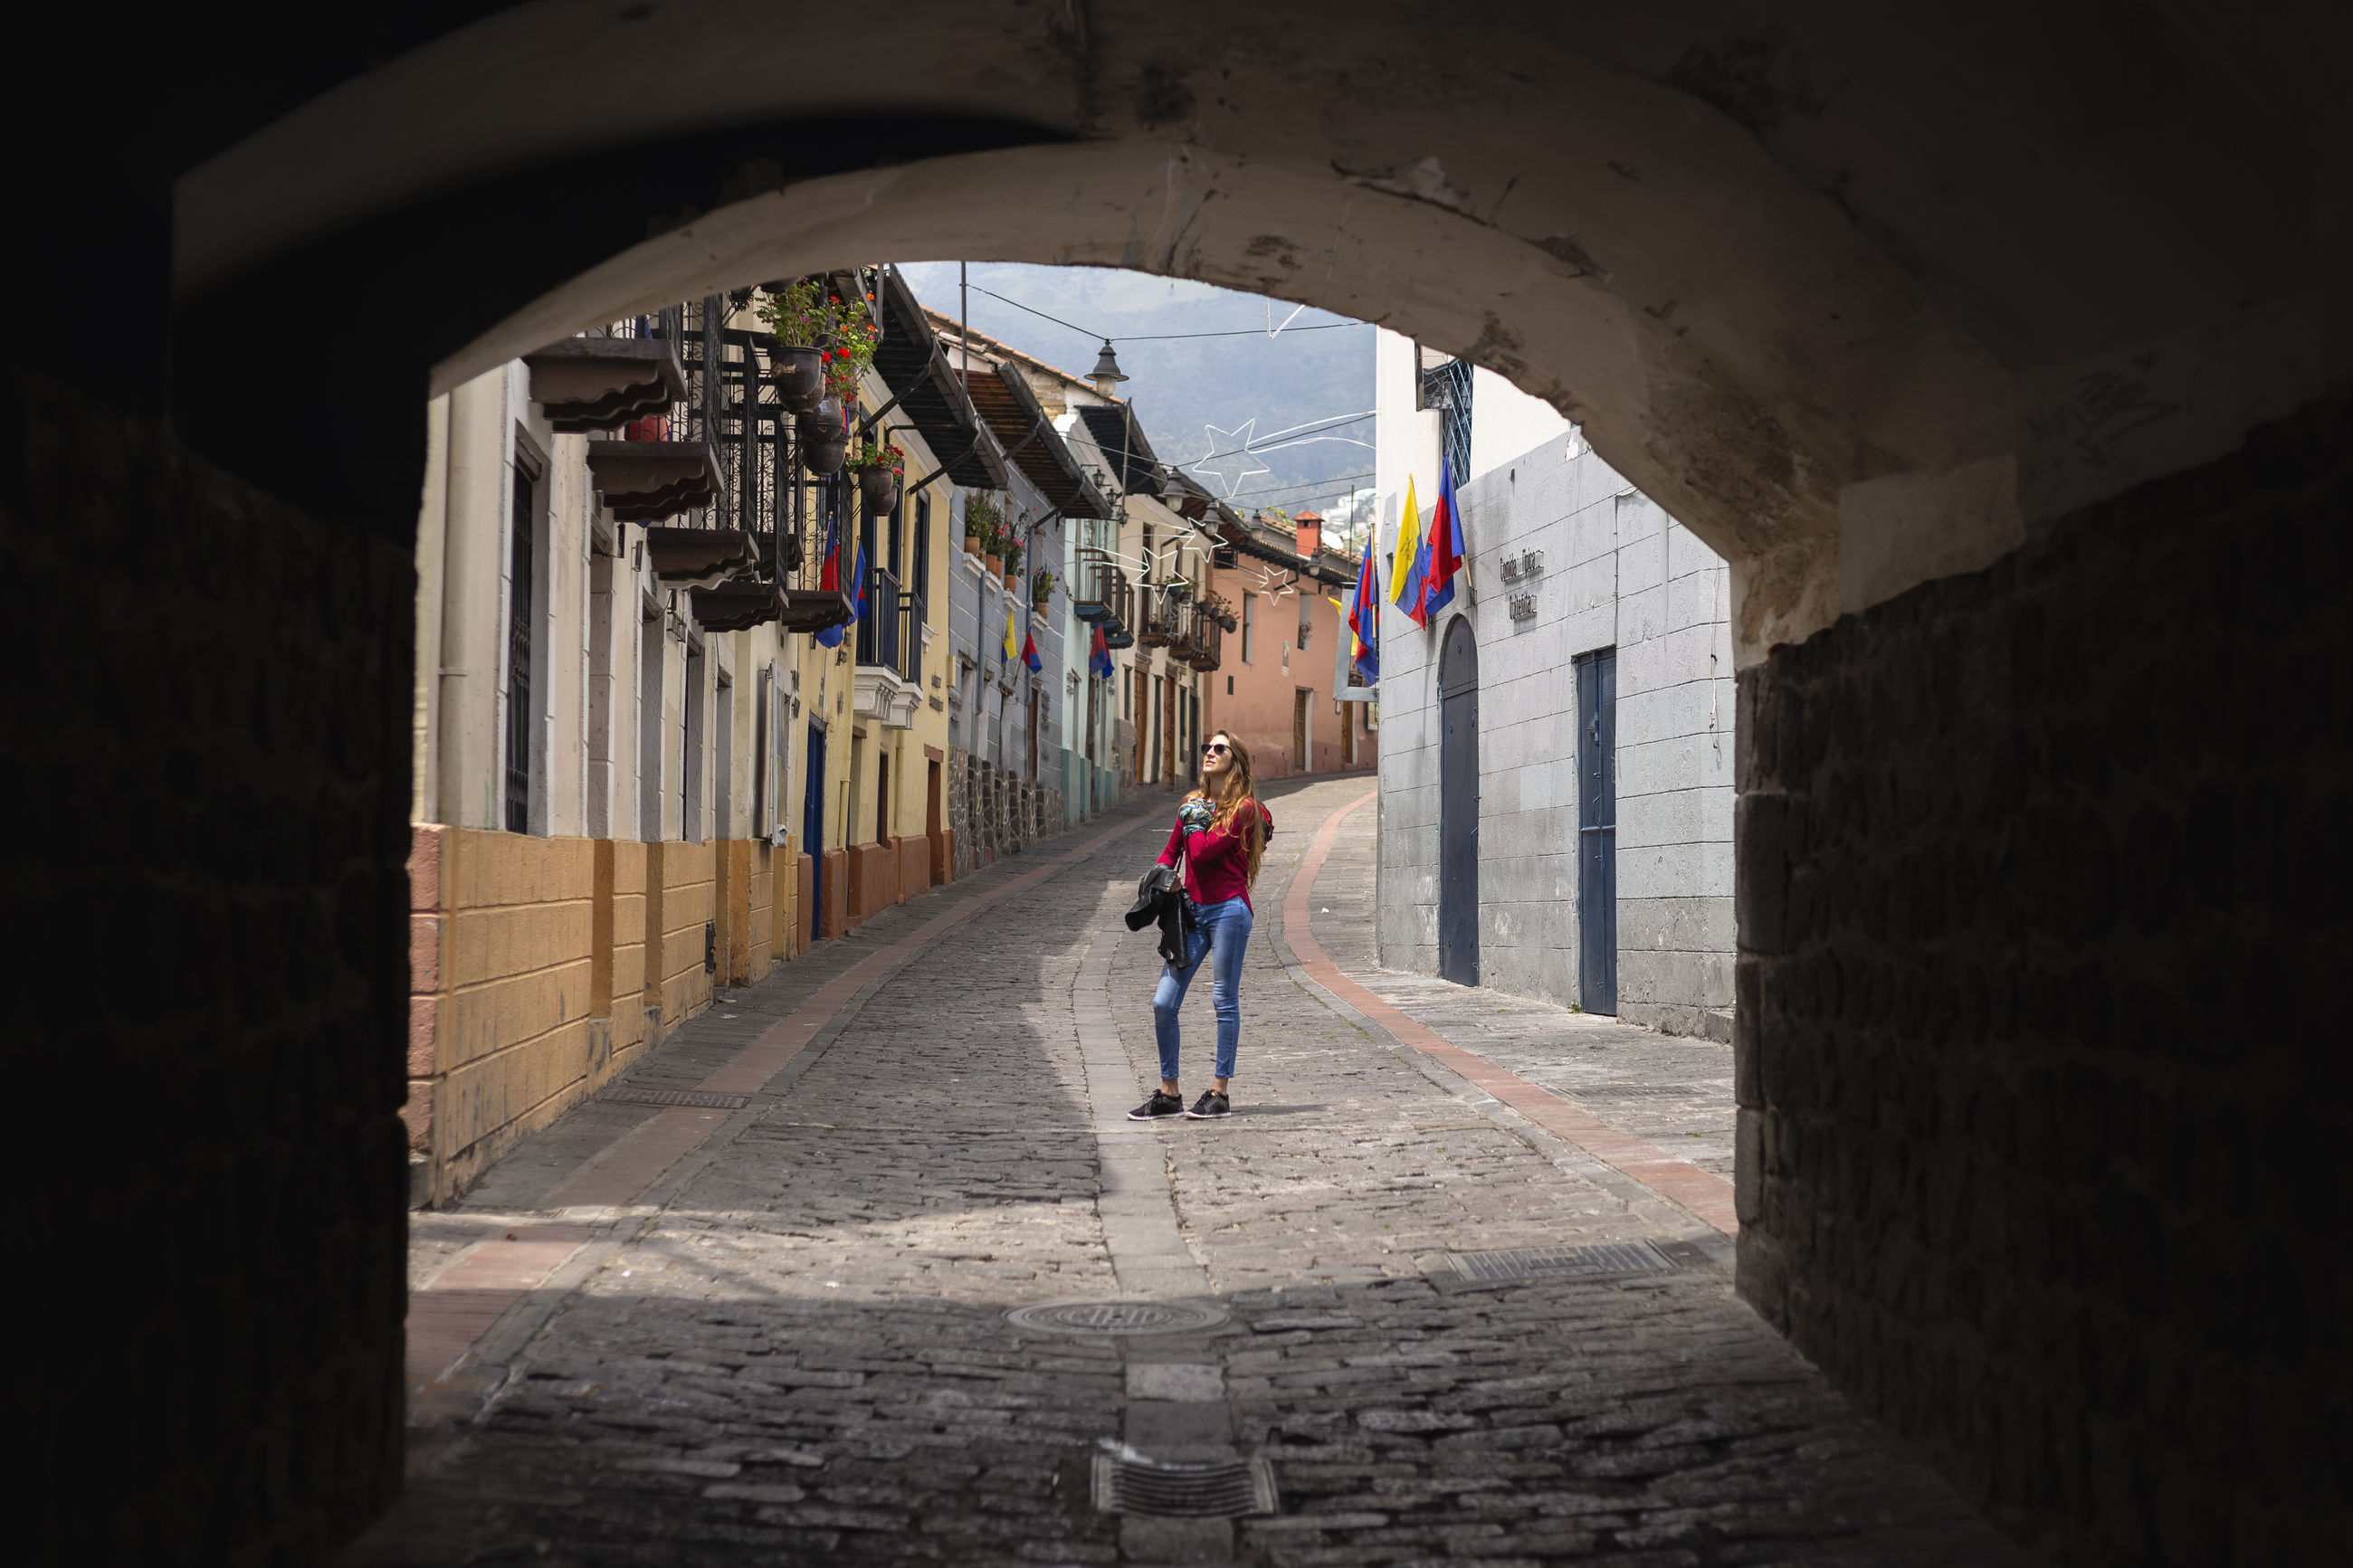 Woman standing in alley amidst buildings